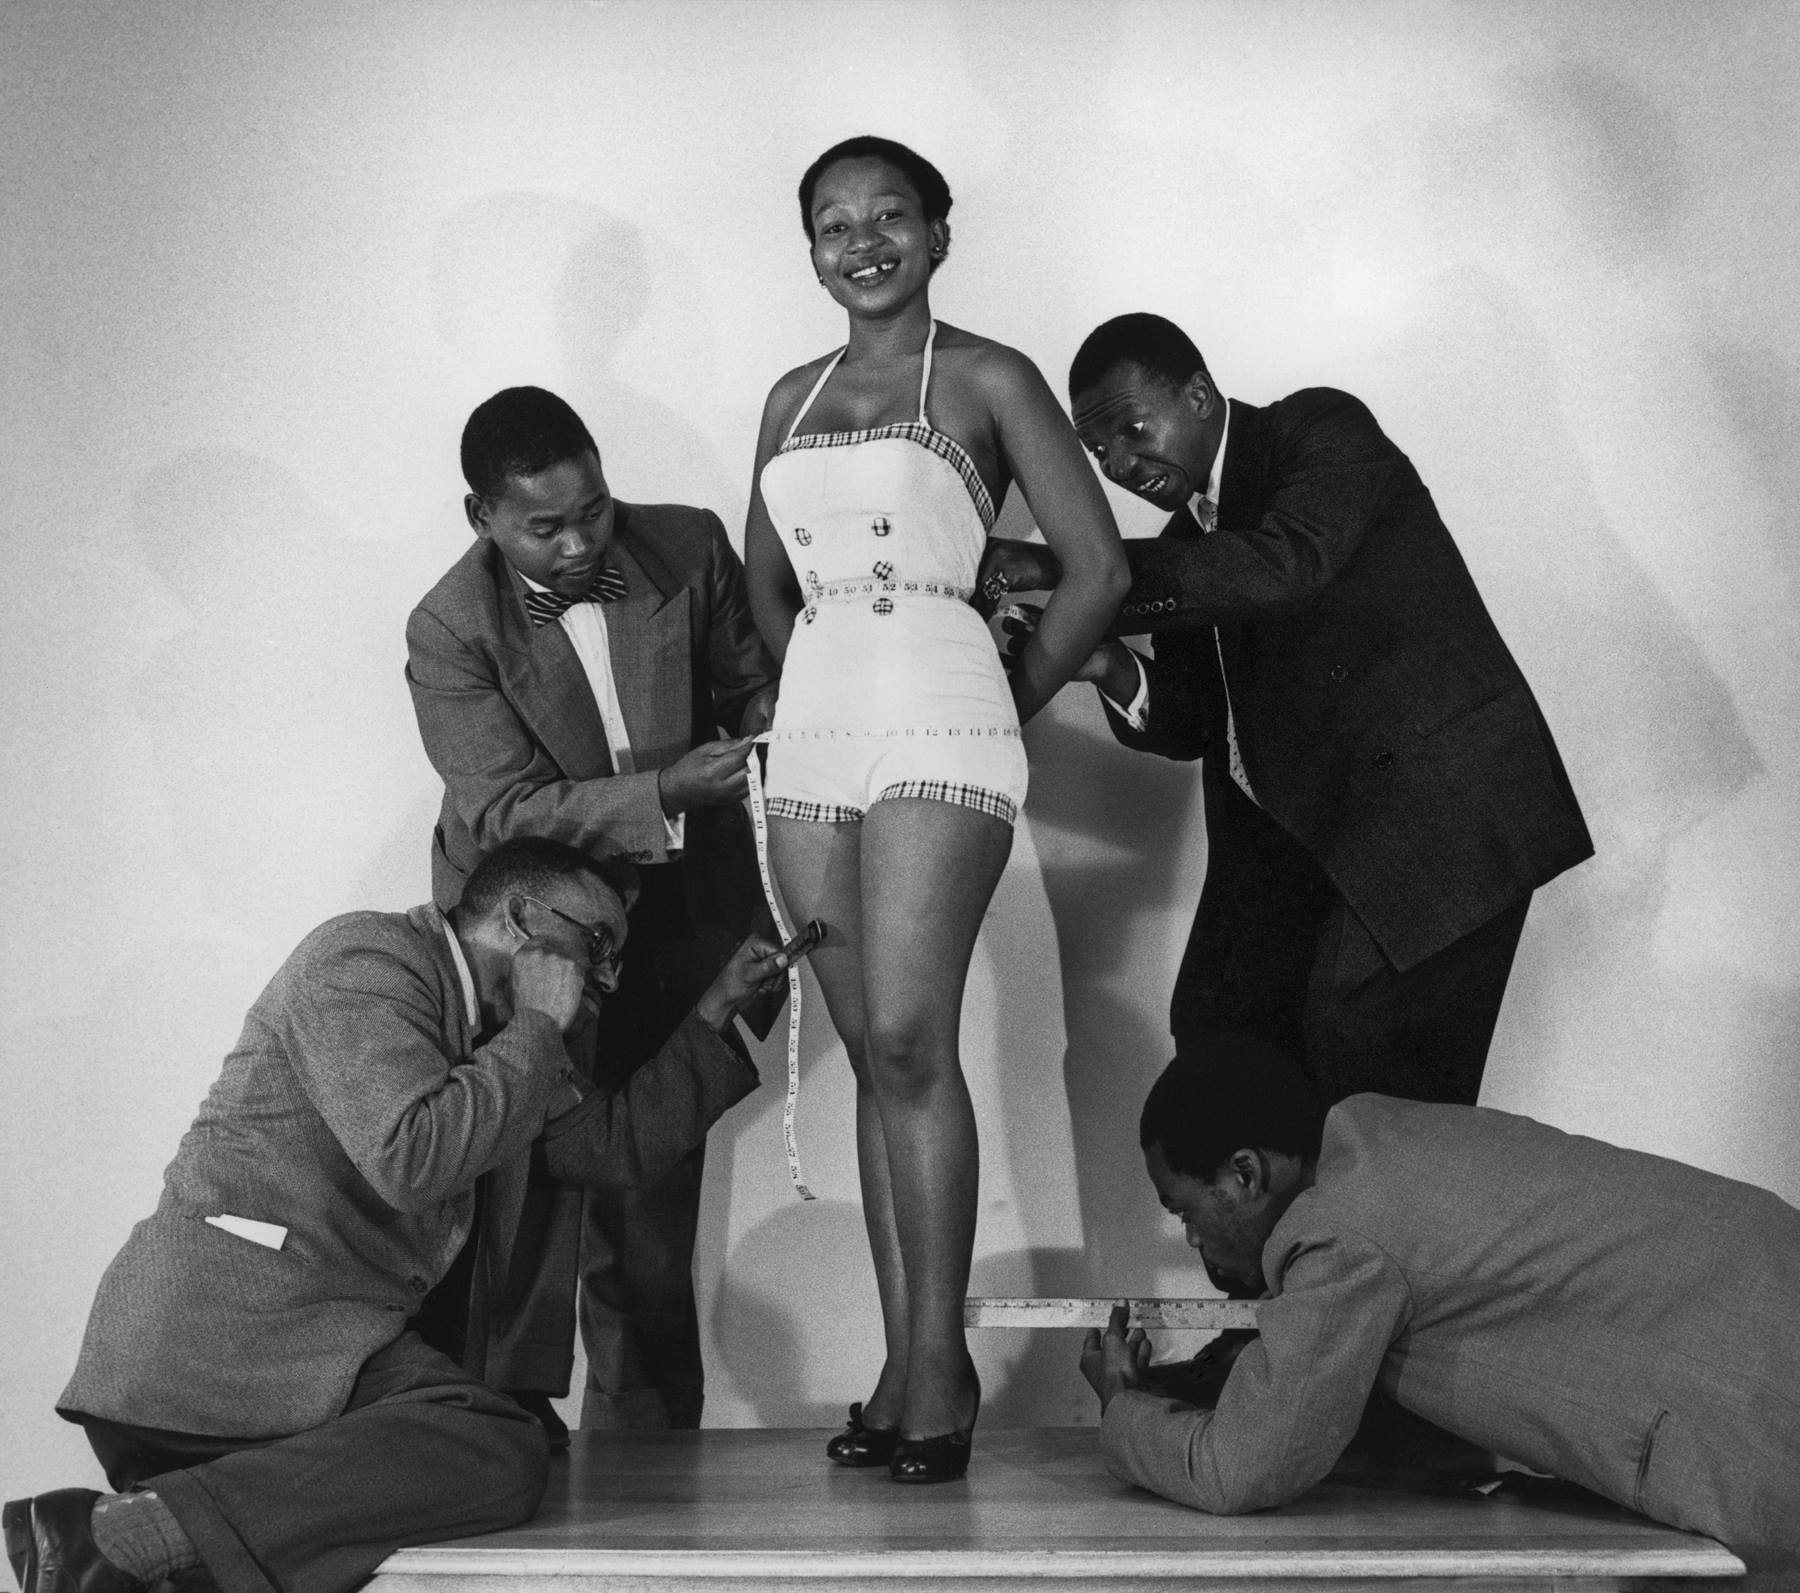 Measuring up for Drum cover, Johannesburg, 1955<br/>